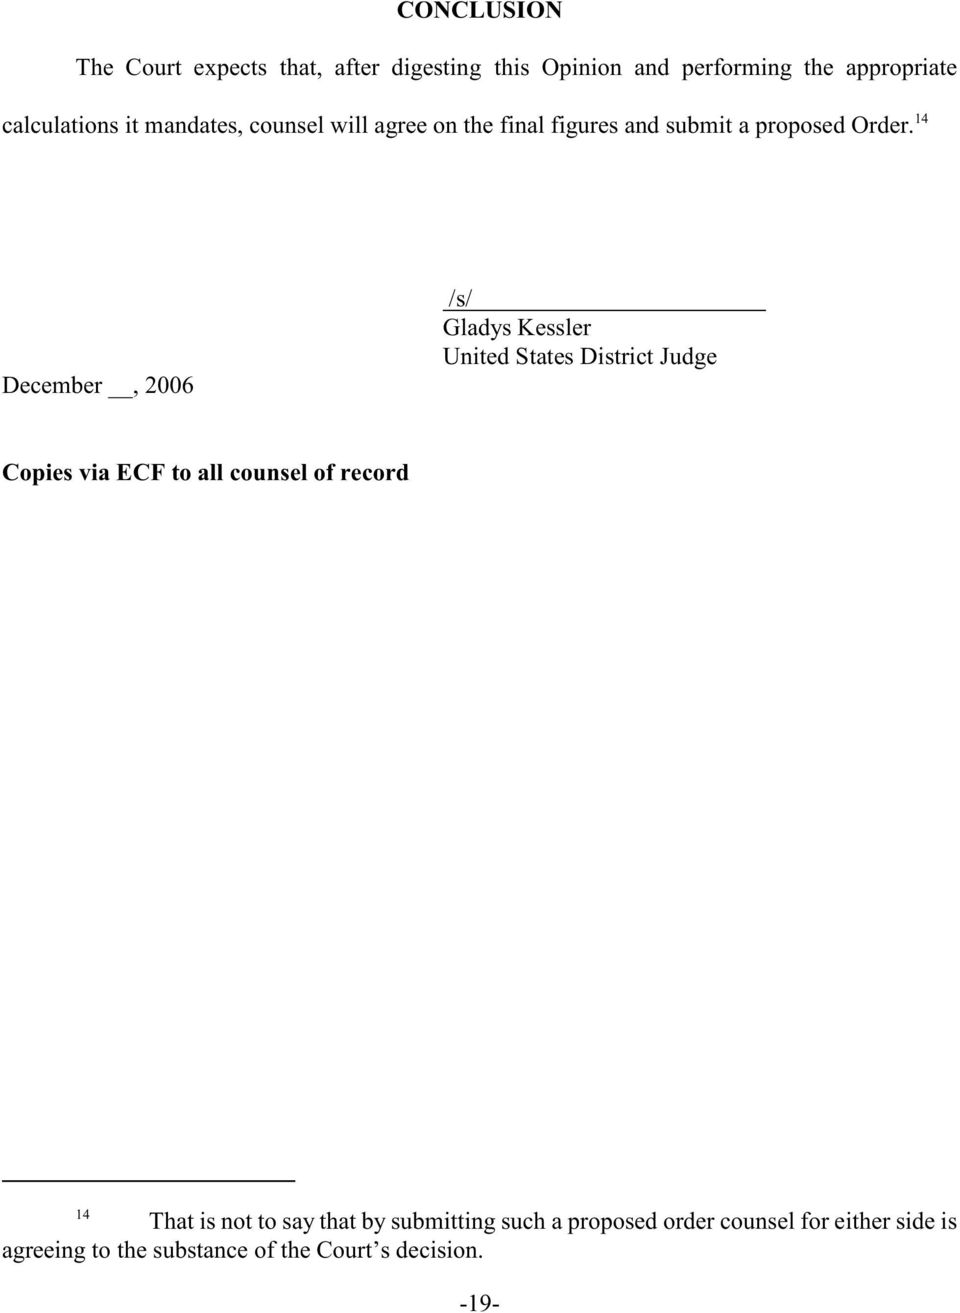 14 December, 2006 /s/ Gladys Kessler United States District Judge Copies via ECF to all counsel of record 14